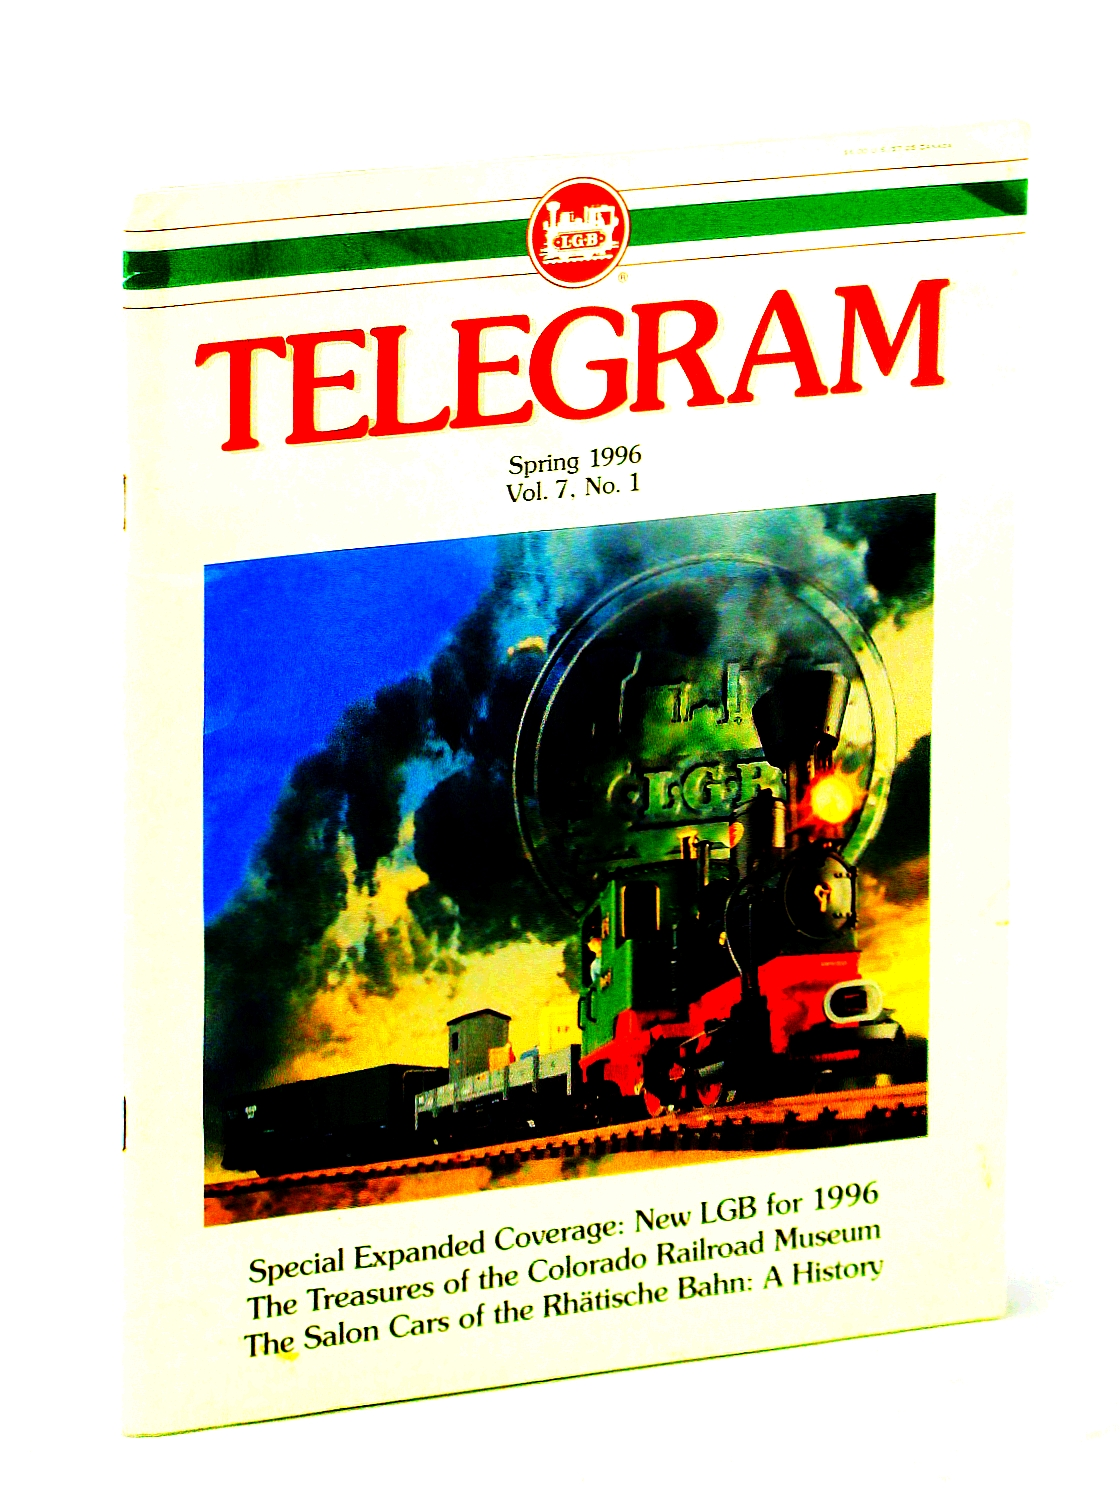 Image for [LGB] Telegram [Magazine], Spring 1996, Vol. 7, No. 1 - Salon Cars of the Rhatische Bahn